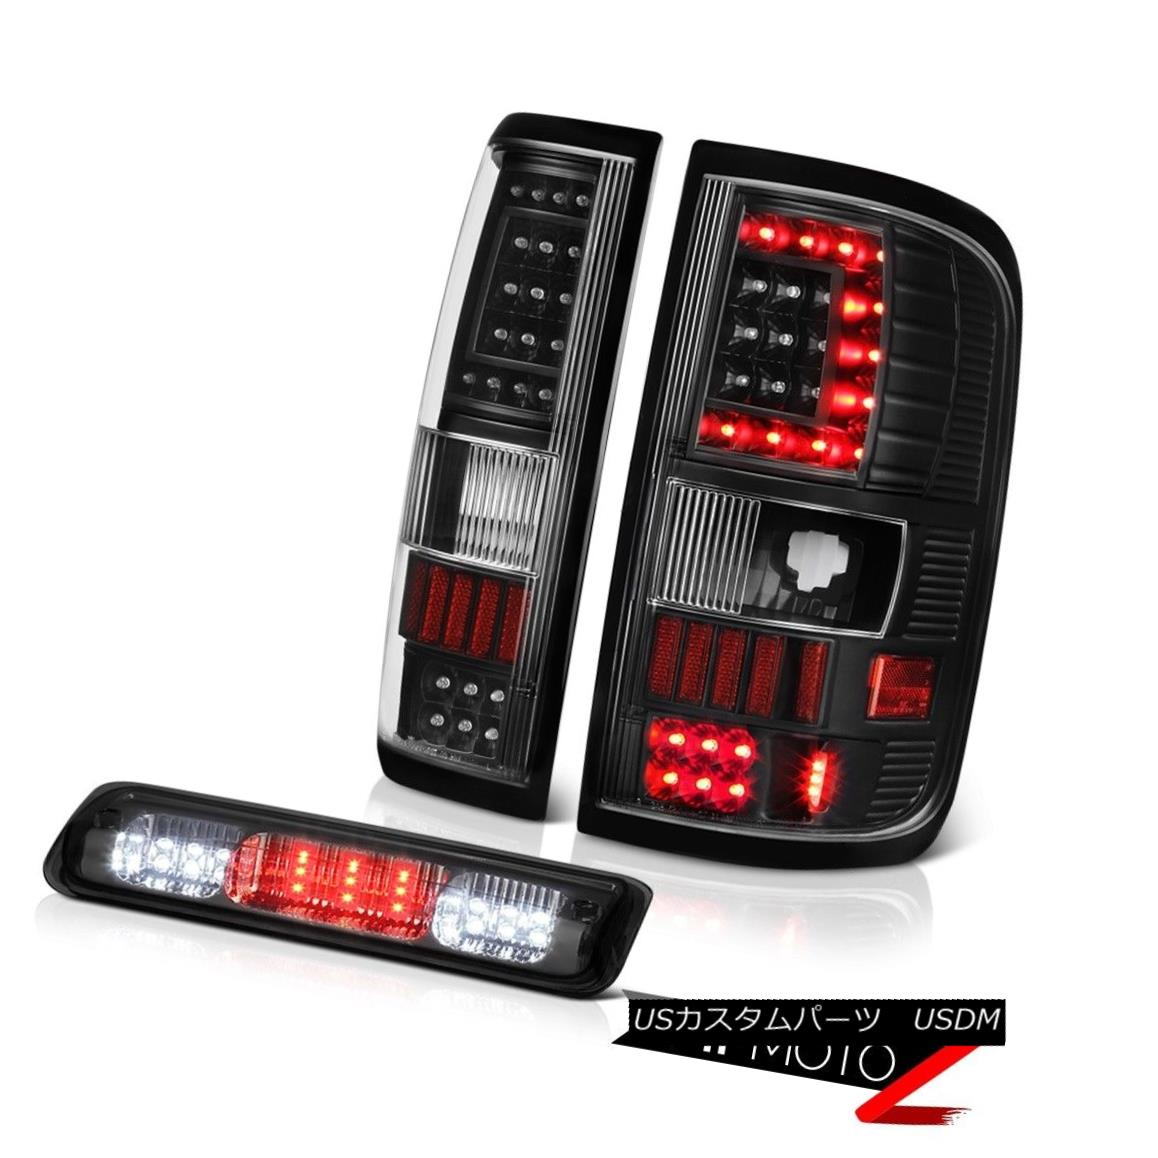 テールライト 2004-2008 Ford F150 F-150 Led Bar Tail Lamp Titanium Smoke Third Brake Set LH+RH 2004-2008フォードF150 F-150 Led BarテールランプチタンSmoke Third Brake Set LH + RH